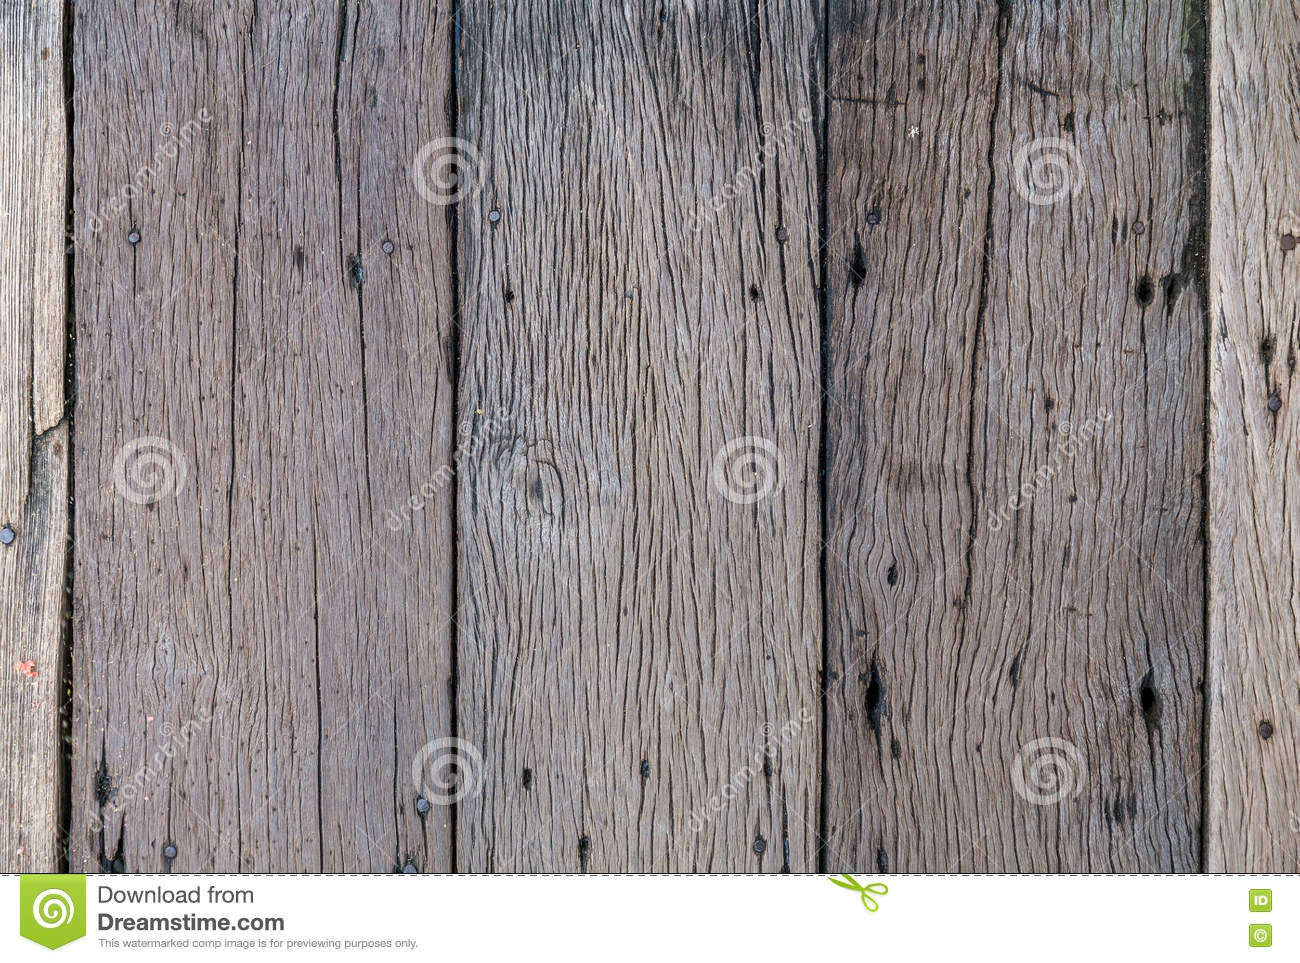 Download Old Plank Wooden Floor Background Damaged B Stock Image - Image of decorative, carpentry: 81254201